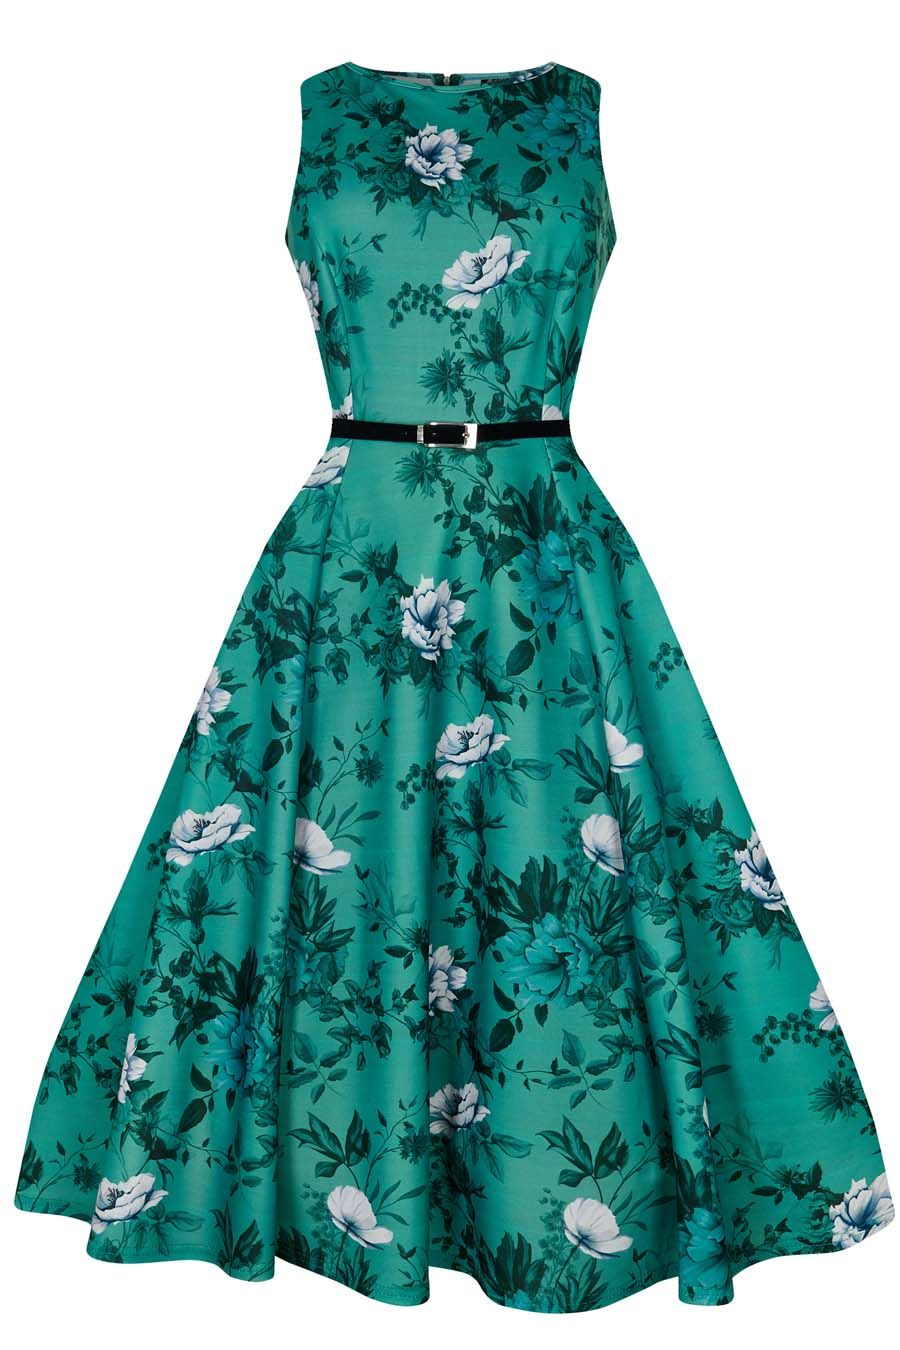 Hepburn - Wild Roses On Teal | Teal, Rose and Stylish